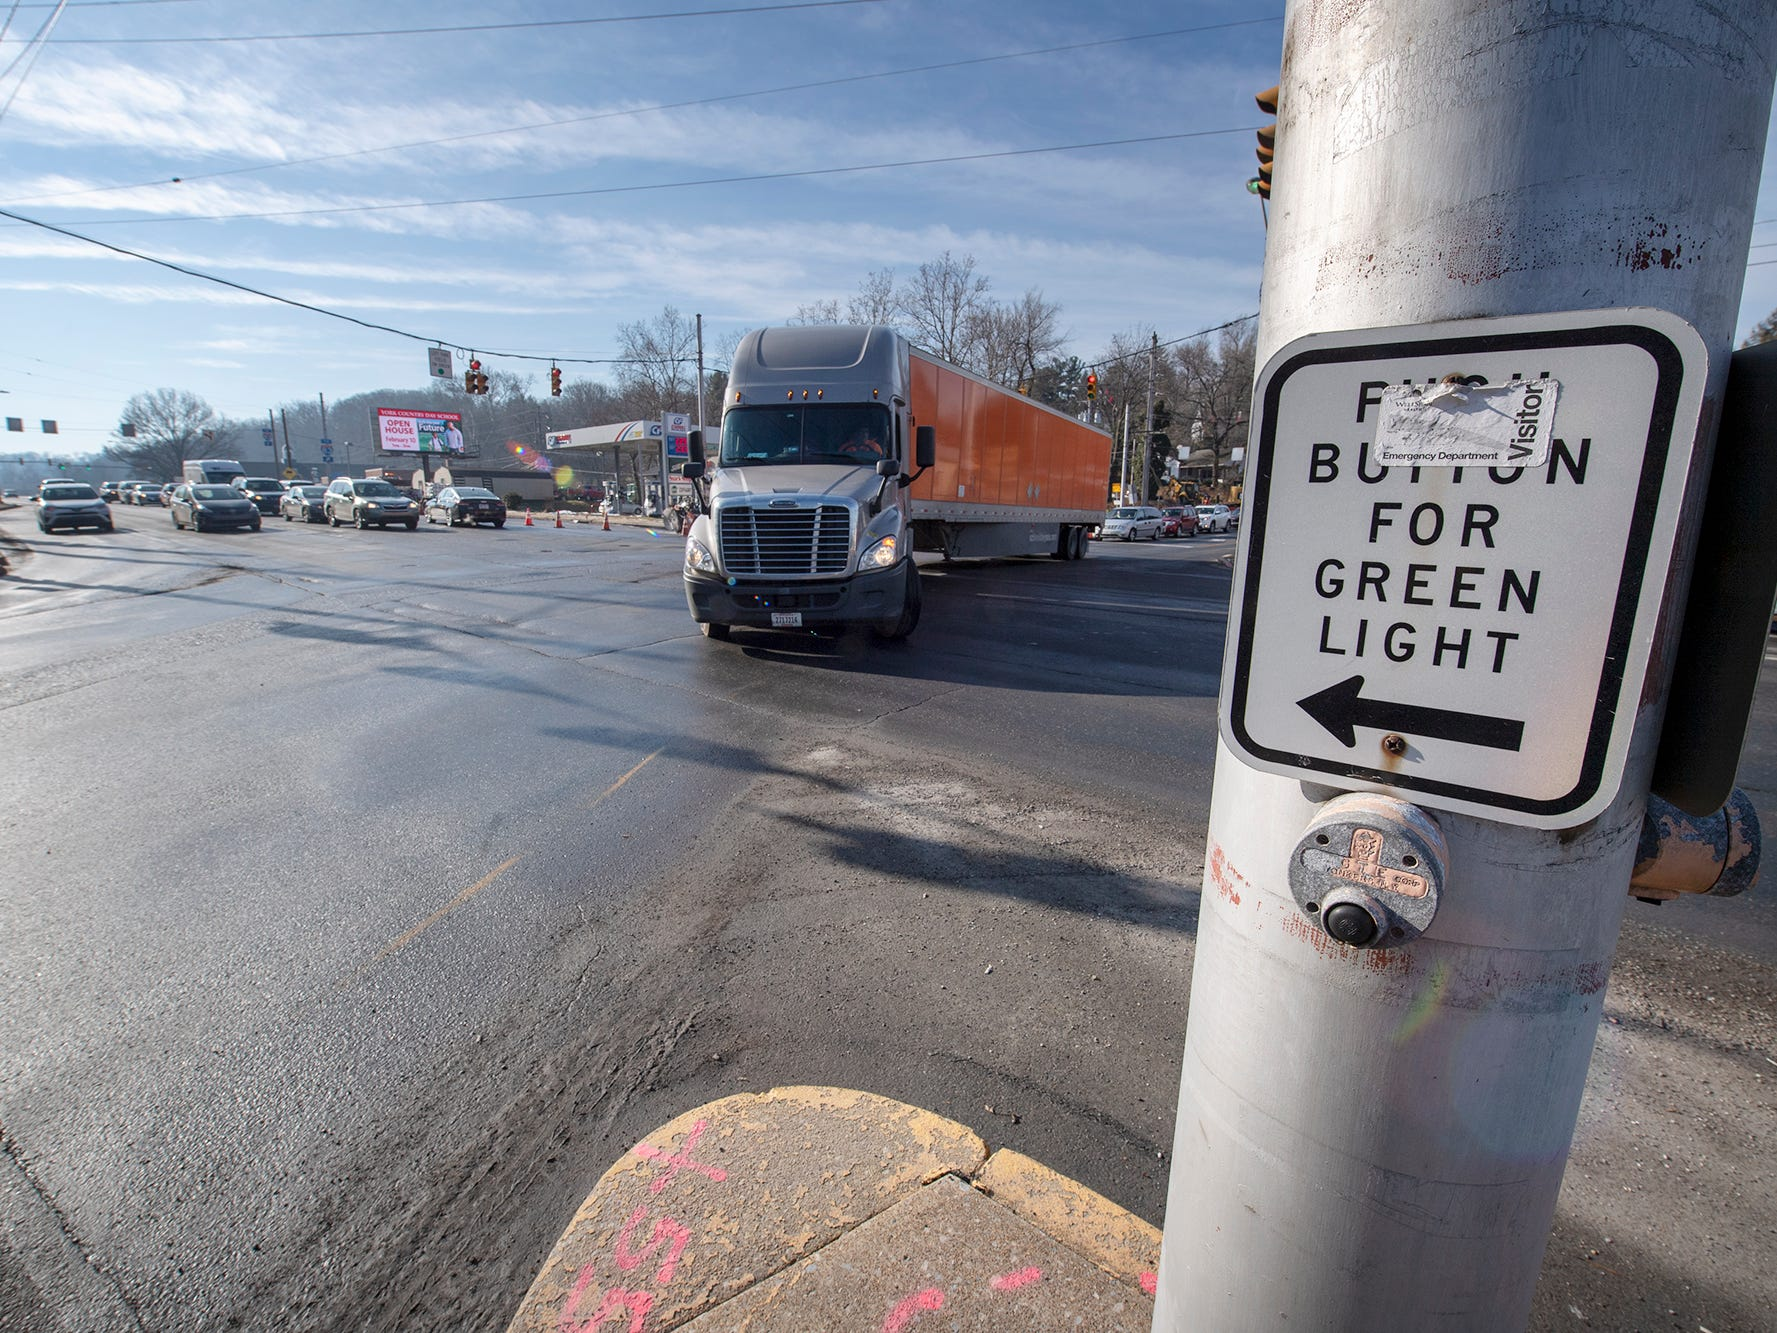 A truck makes a left turn on to North George Street through the intersection of Rathton Road, South George Street and Country Club Roads Tuesday February 5, 2019.